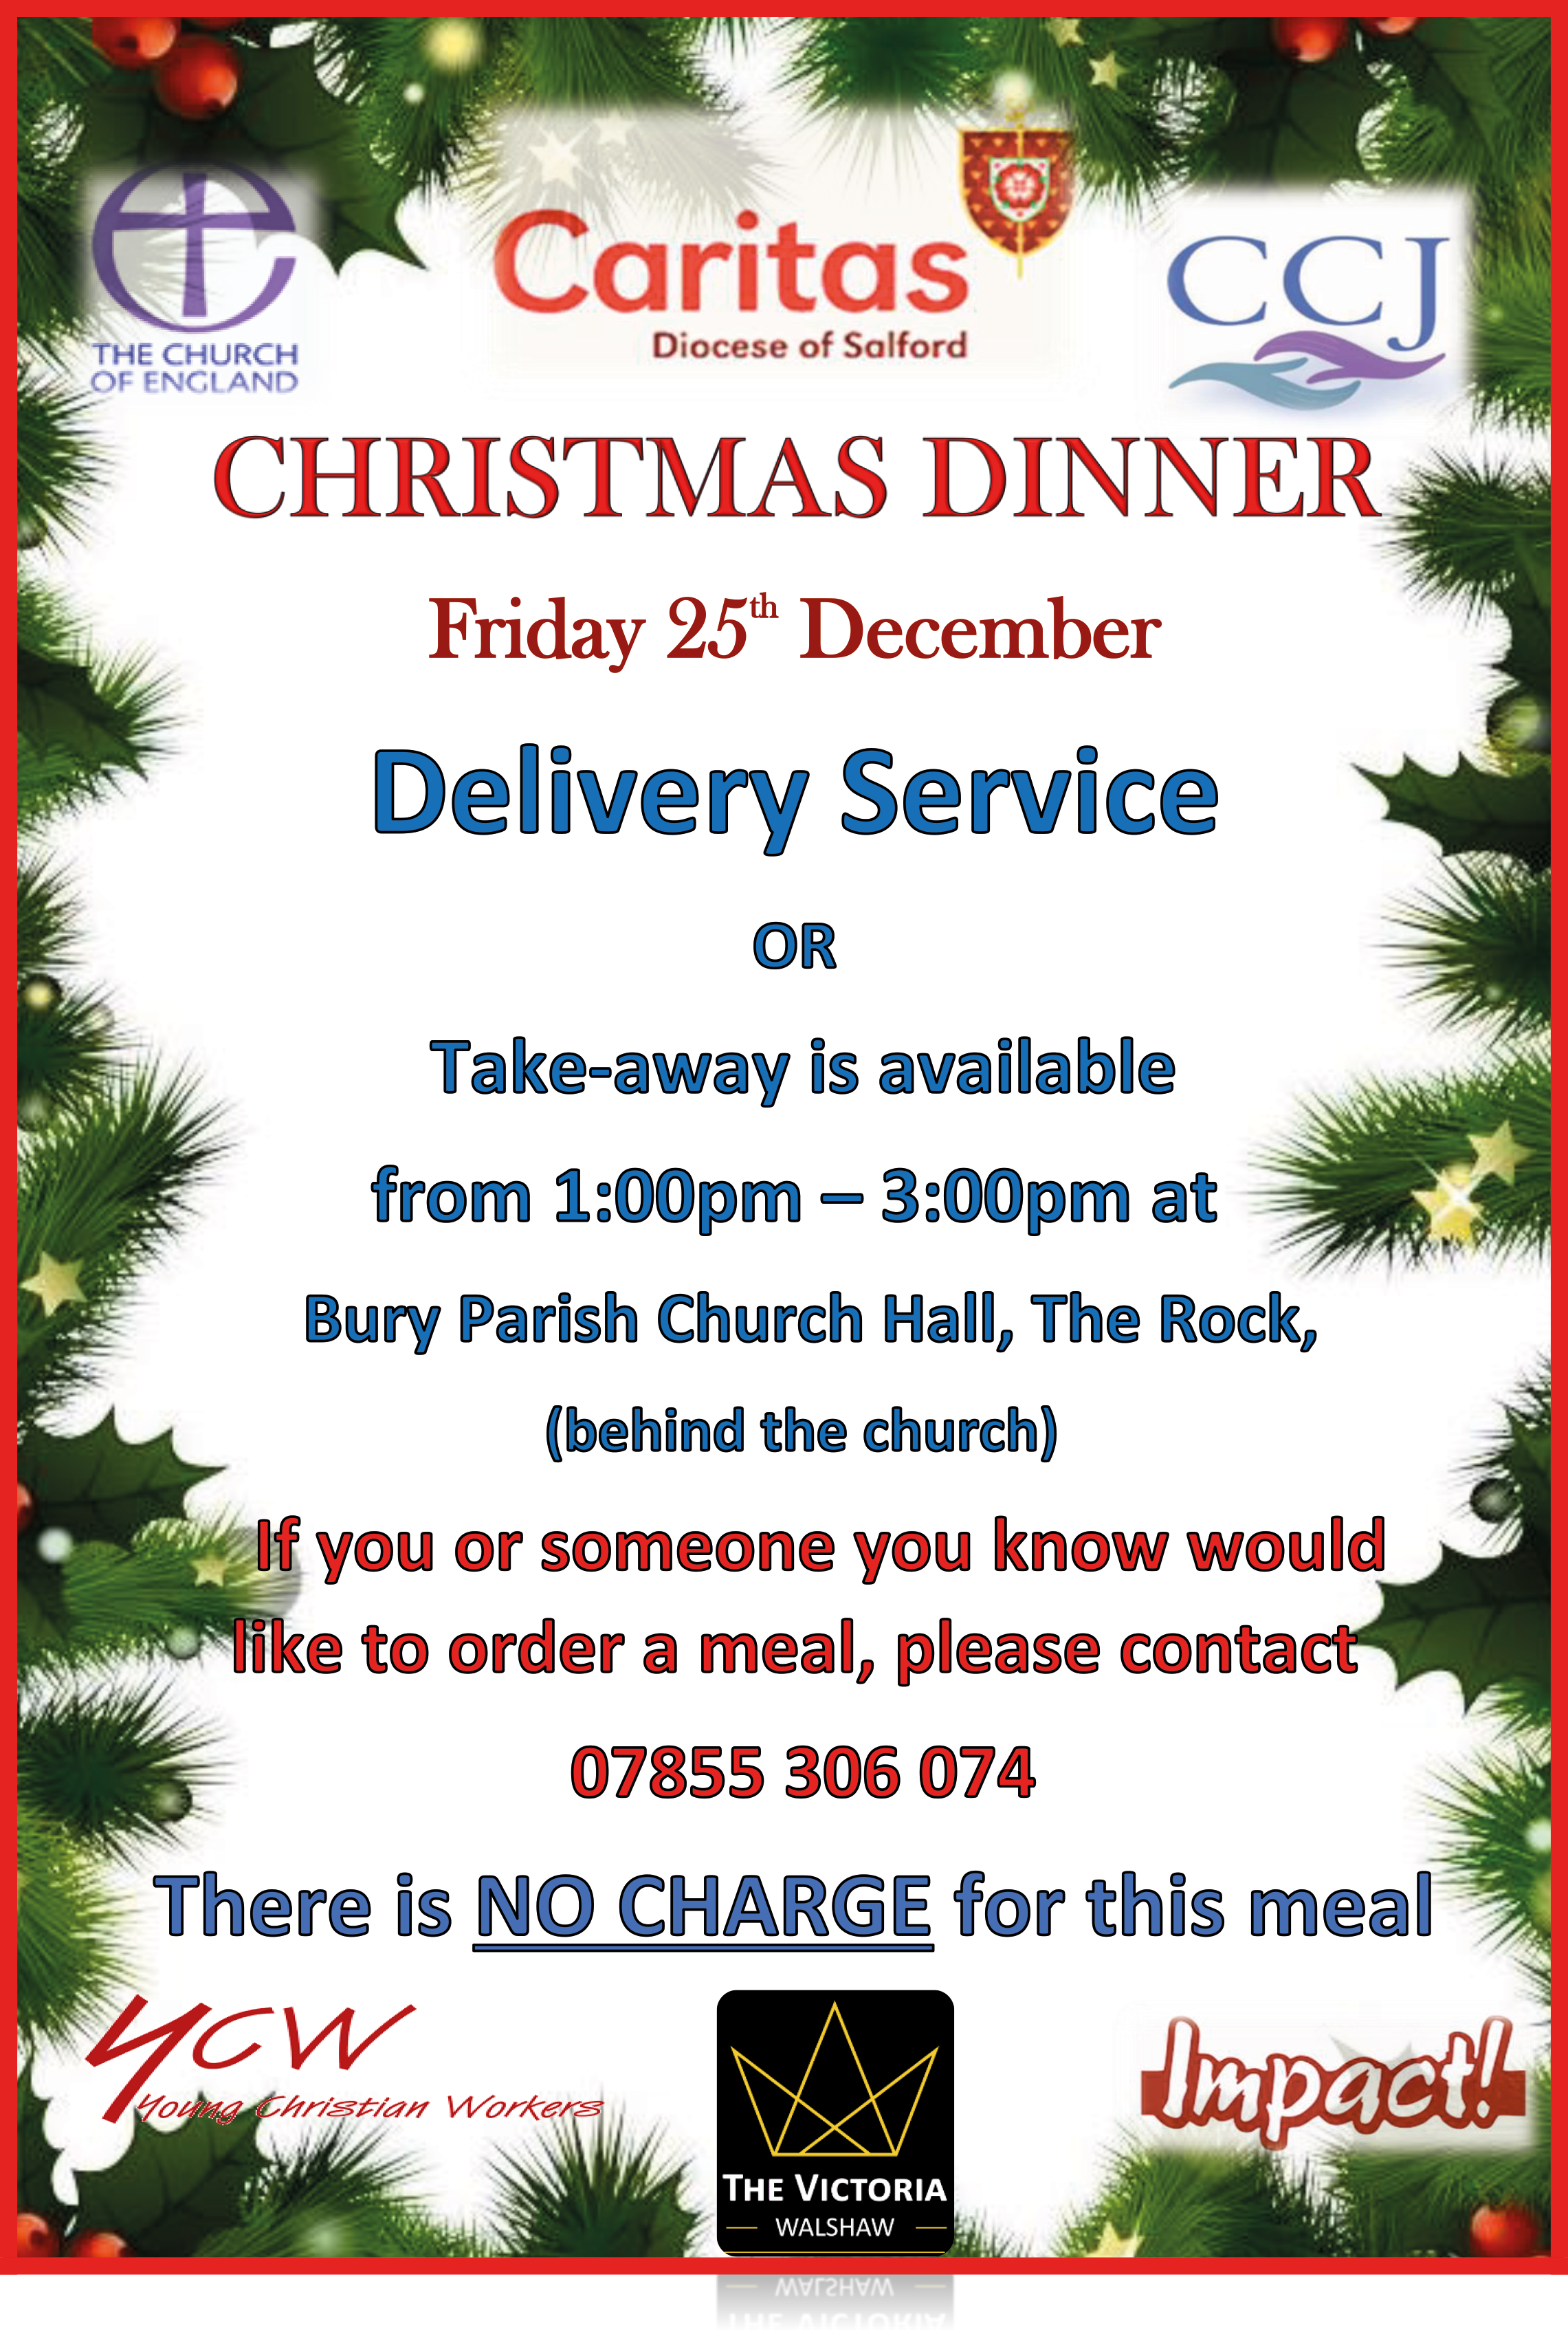 Christmas Dinner For Those In Need